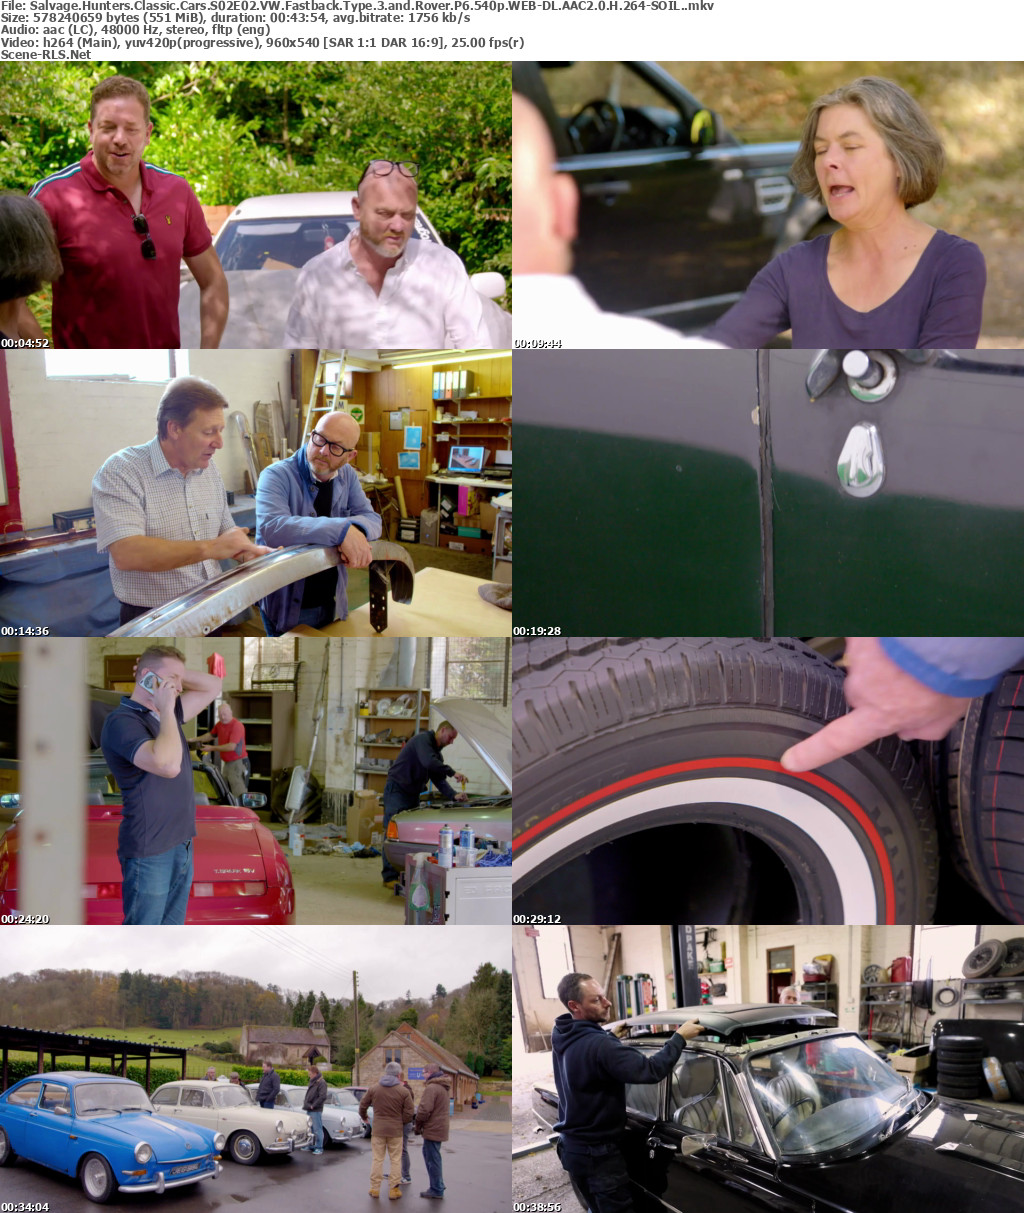 salvage hunters classic cars s02e02 vw fastback type 3 and. Black Bedroom Furniture Sets. Home Design Ideas